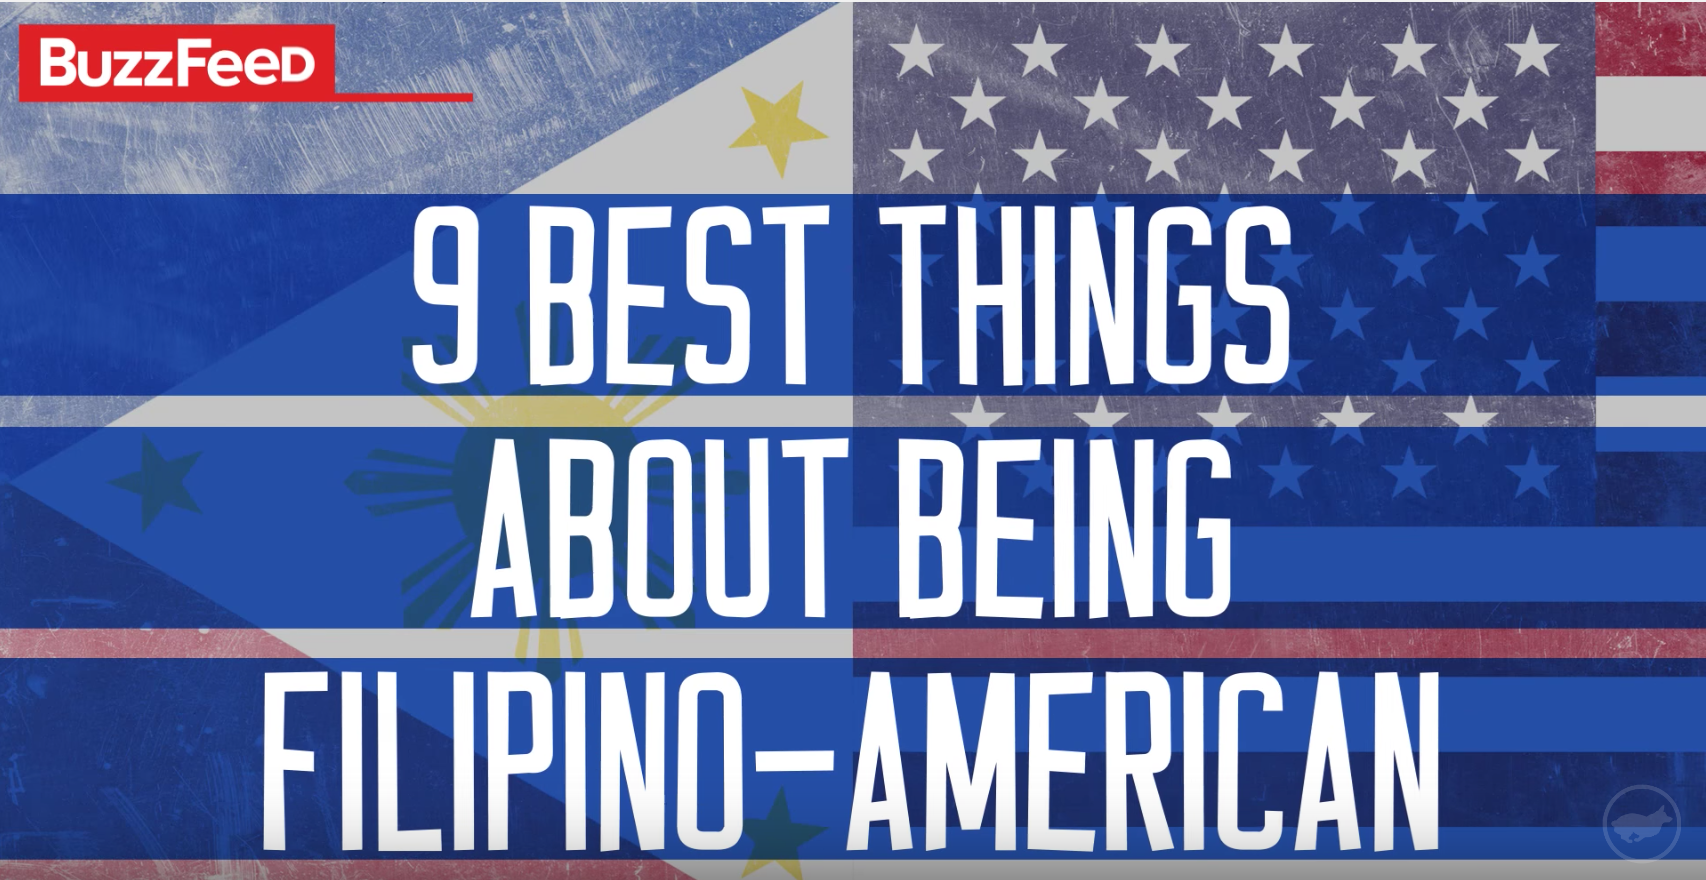 9 Best Things About Being Filipino-American